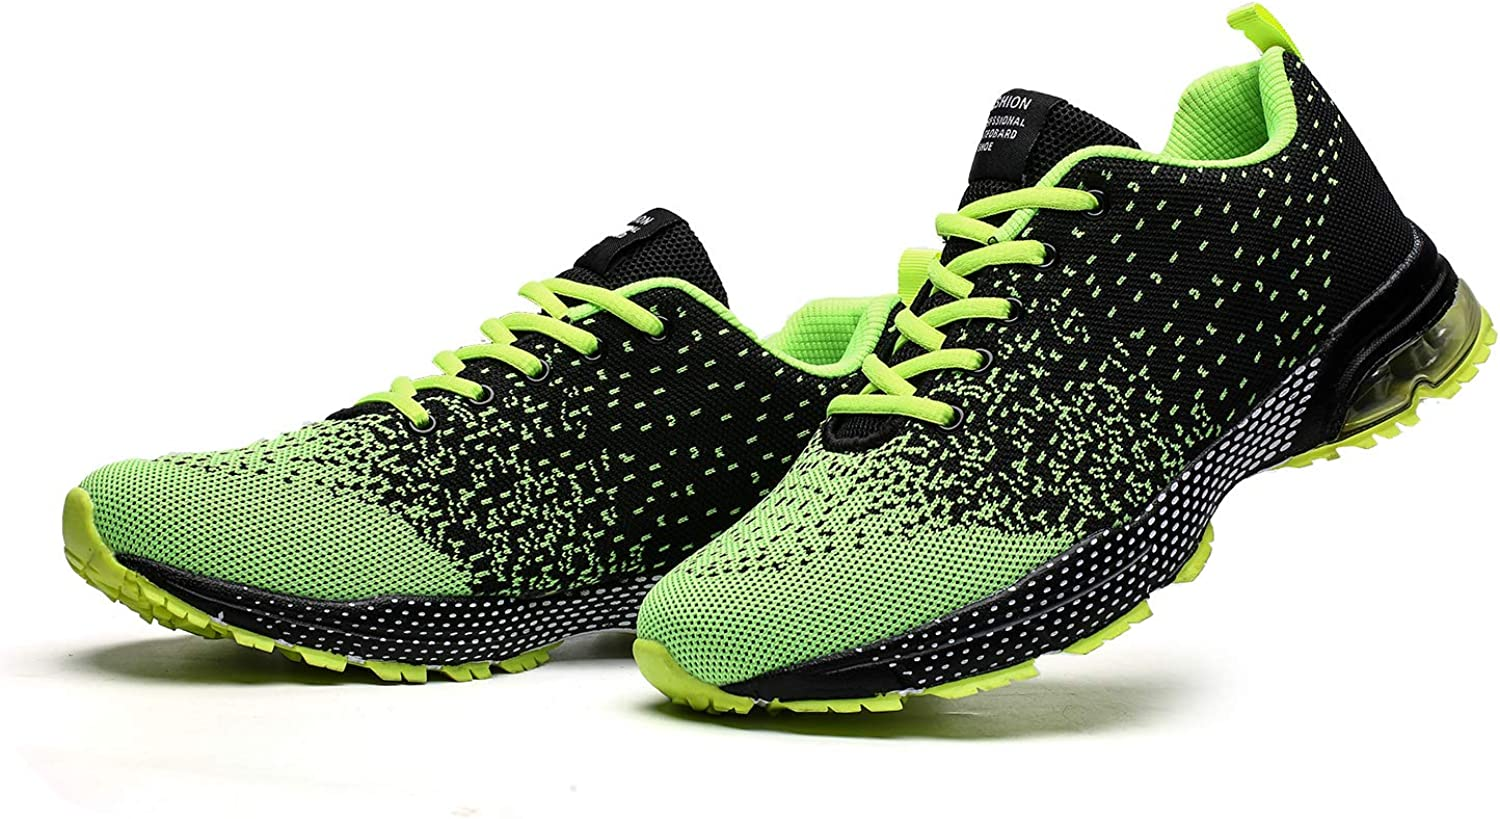 Socviis Mens Running Shoes Fashion Breathable Sneakers Lightweight Tennis Sport Casual Walking Athletic for Men Outdoor Jogging Shoes